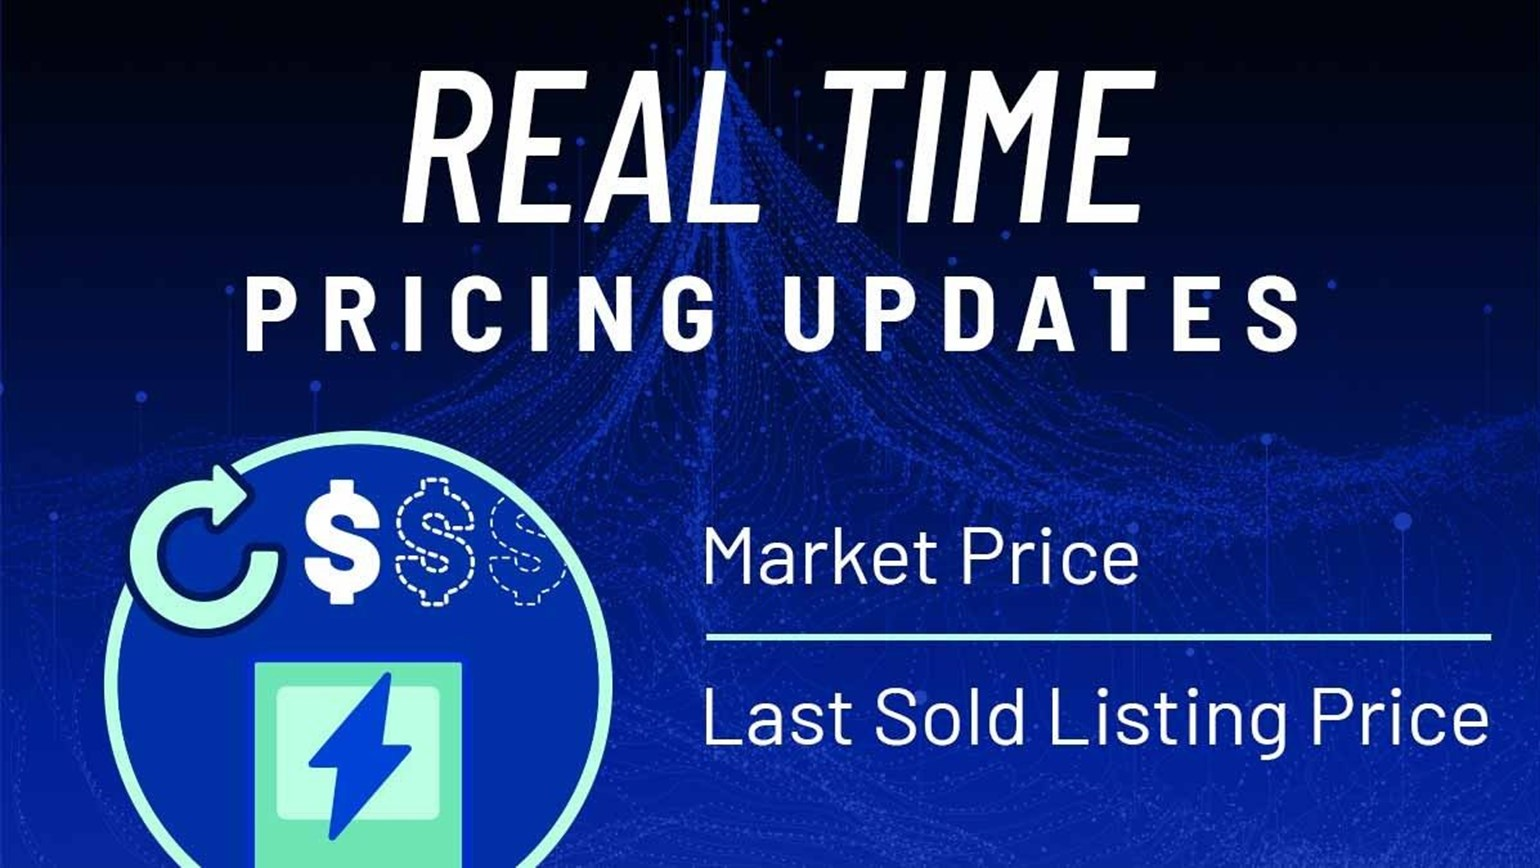 Streaming of Market Price & Last Sold Listing